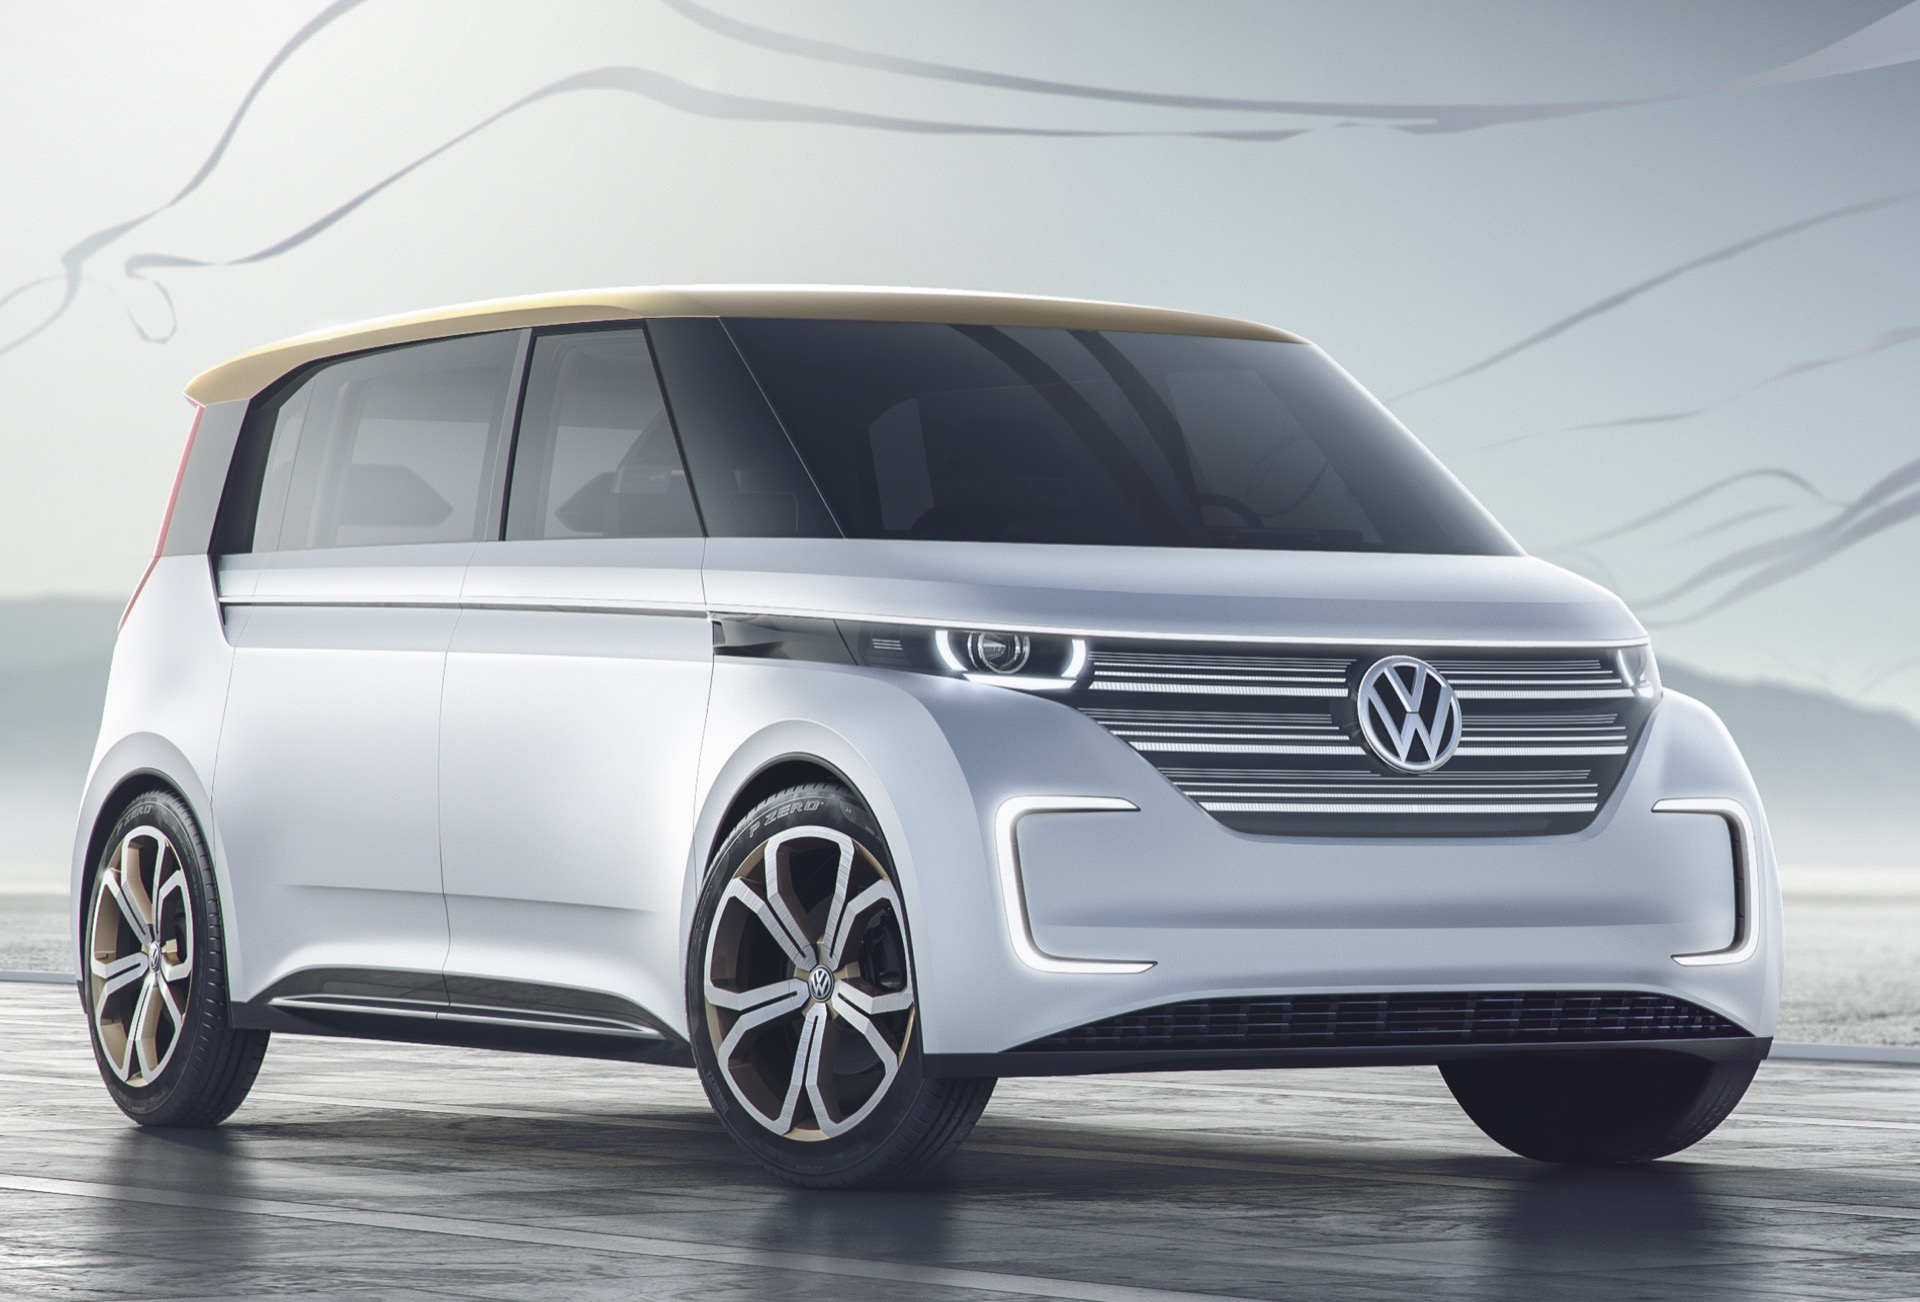 Volkswagen Budd E Concept 373 Mile All Electric Van